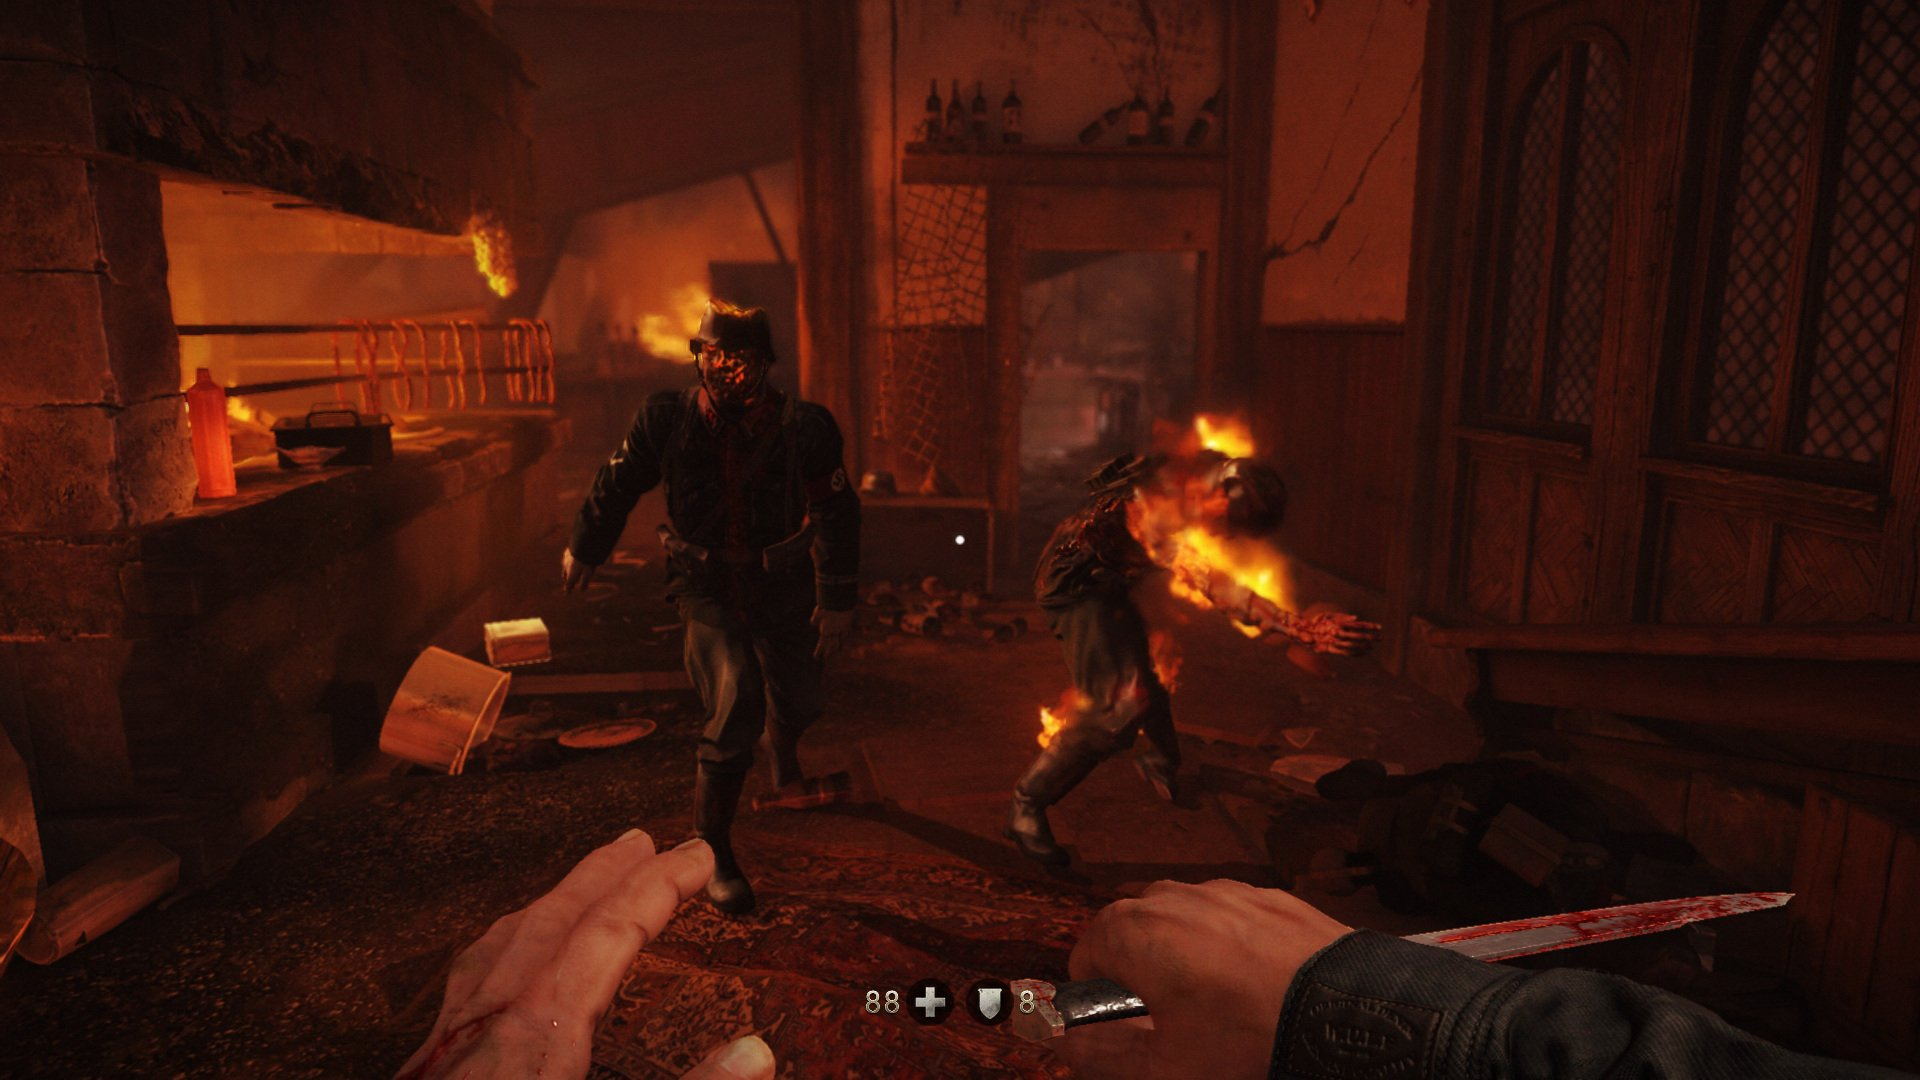 Análisis de Wolfenstein The Old Blood para PC - 3DJuegos